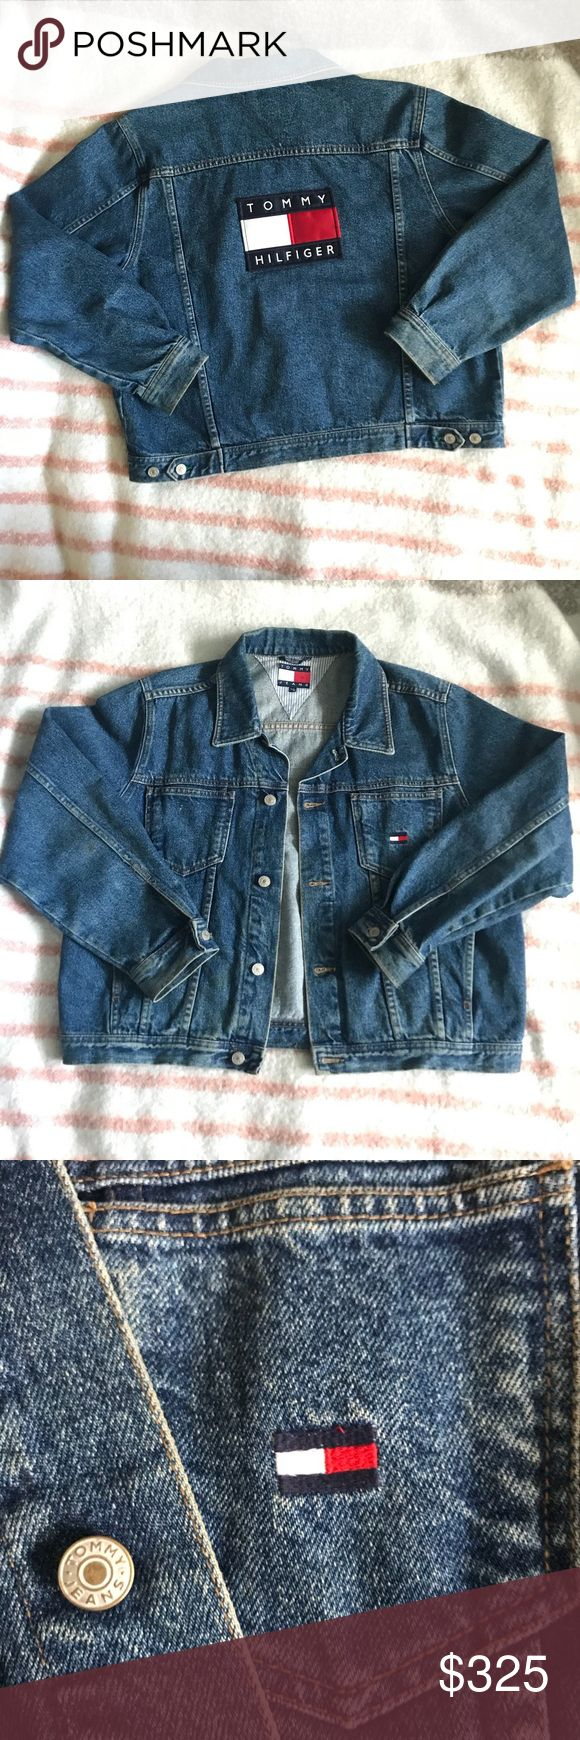 90s Tommy Hilfiger Jeans Denim Flag Logo Jacket Vintage Tommy Hilfiger / Tommy Jeans preowned 90s Denim Jacket. Men's size large and very good looking for it's age. Medium wash denim with button front closure and big Tommy Hilfiger flag logo and name spell out on the back. Tommy Hilfiger Jackets & Coats Lightweight & Shirt Jackets